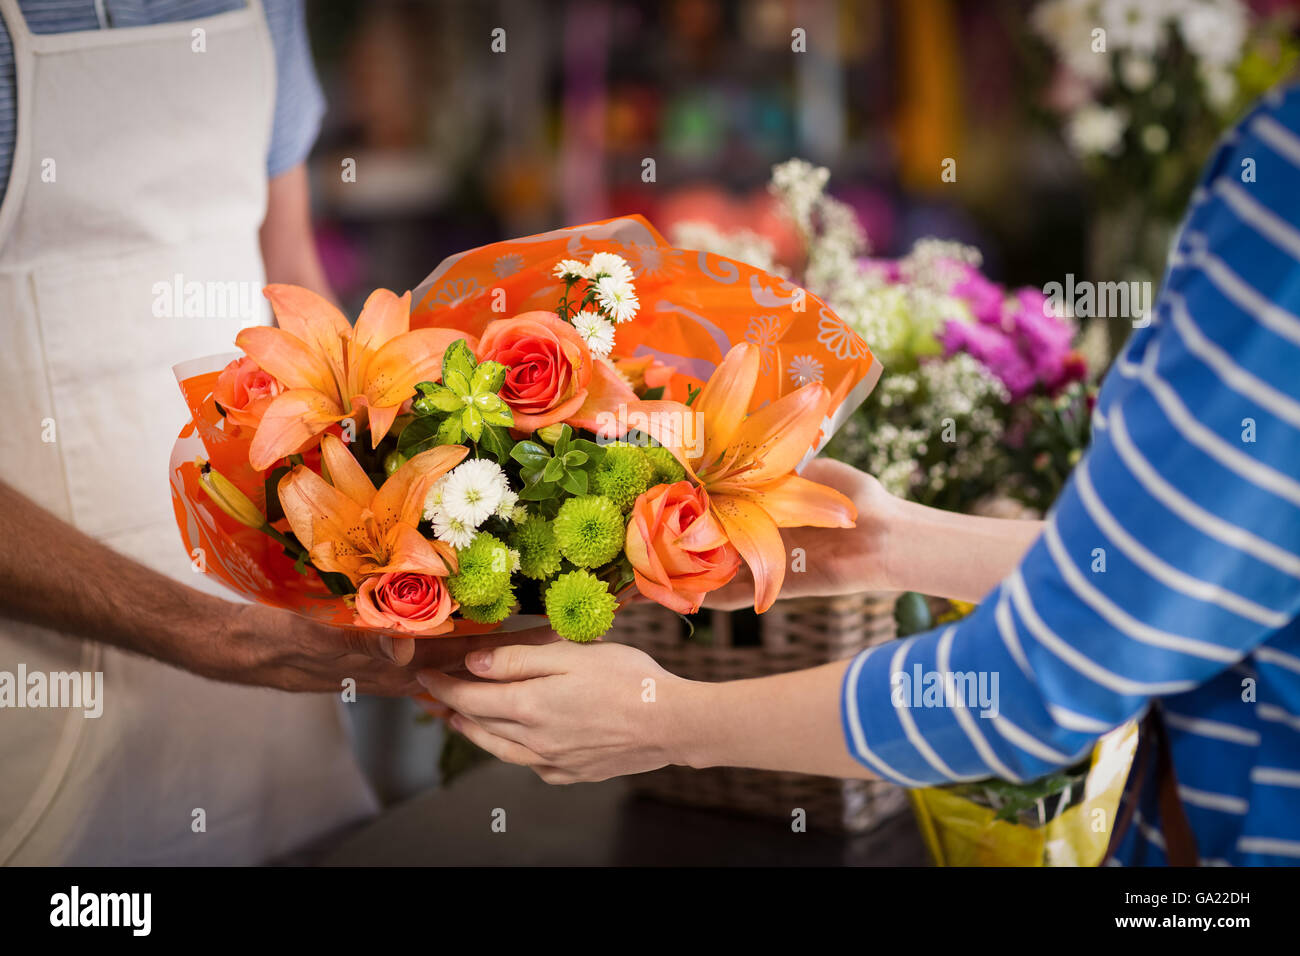 Florist giving bouquet of flower to customer - Stock Image